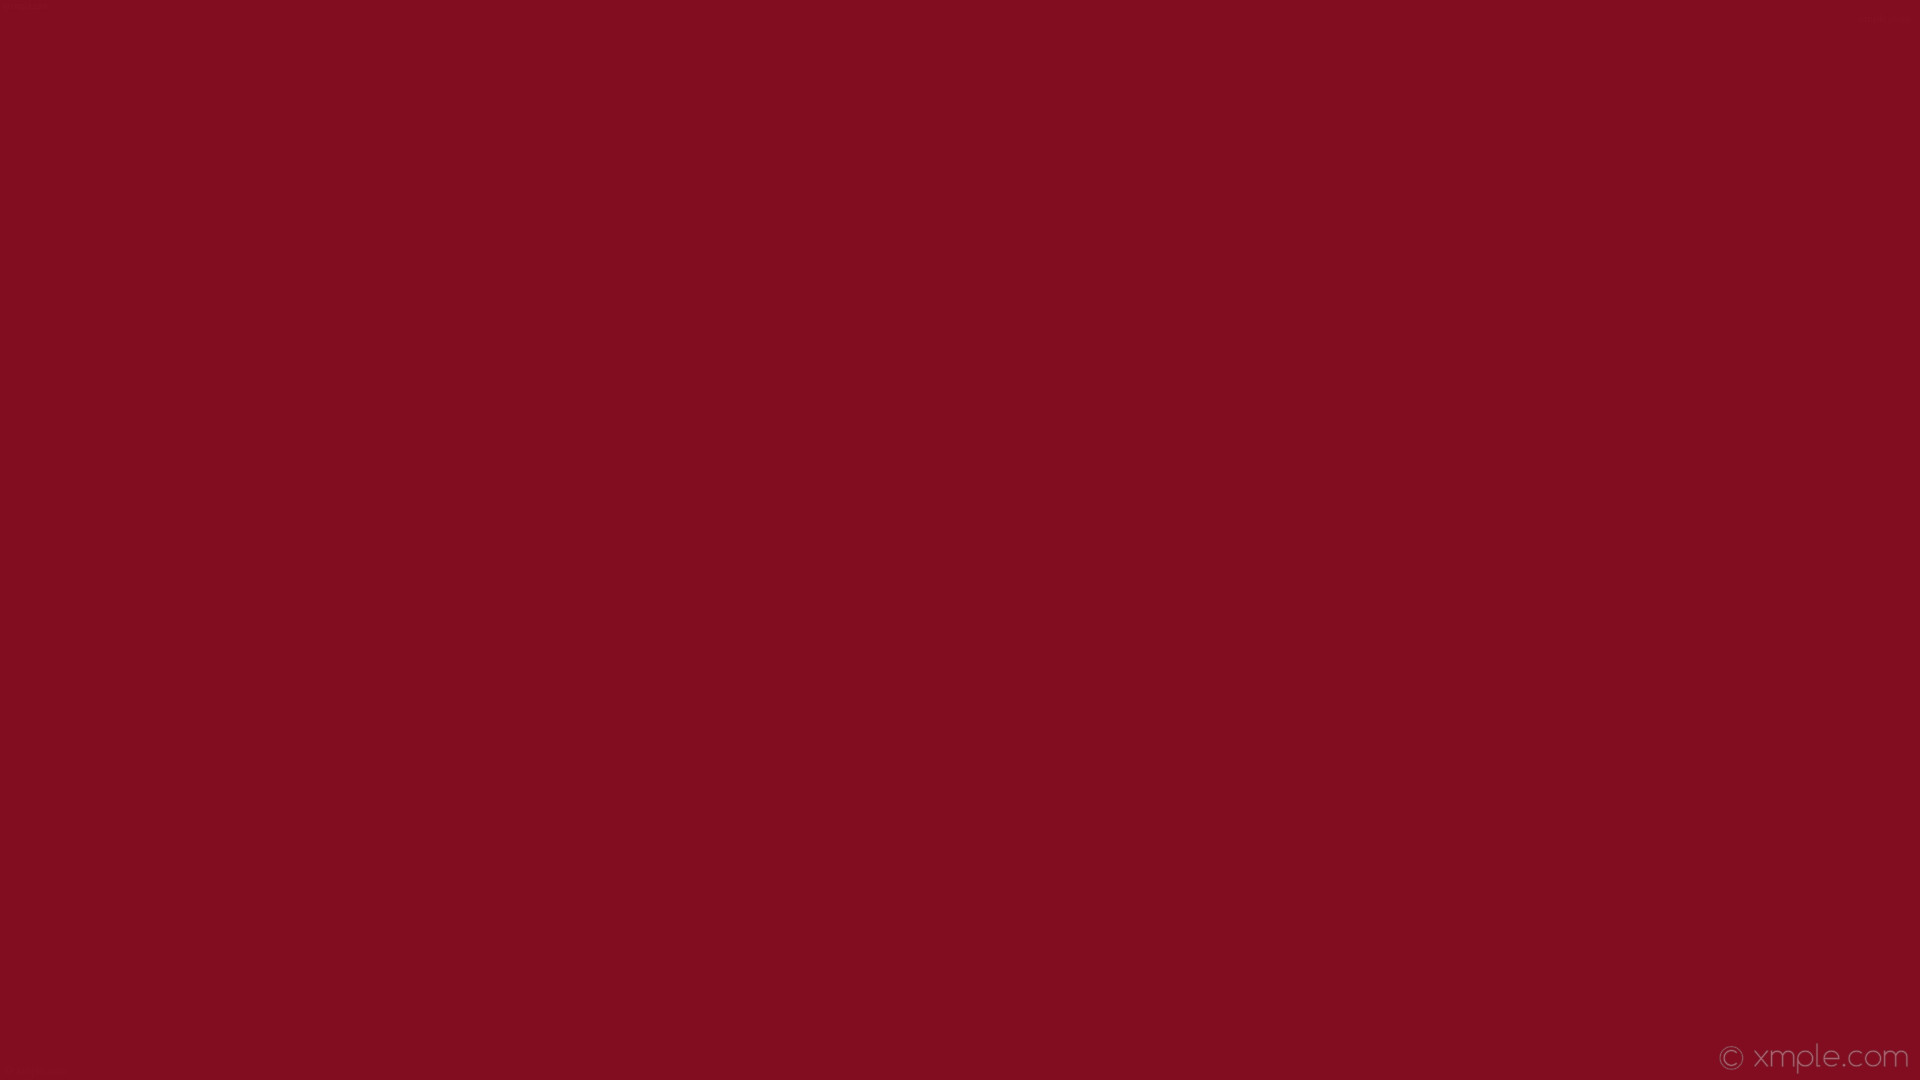 1920x1080 Wallpaper Red Solid Color One Colour Plain Single Light Fbacba